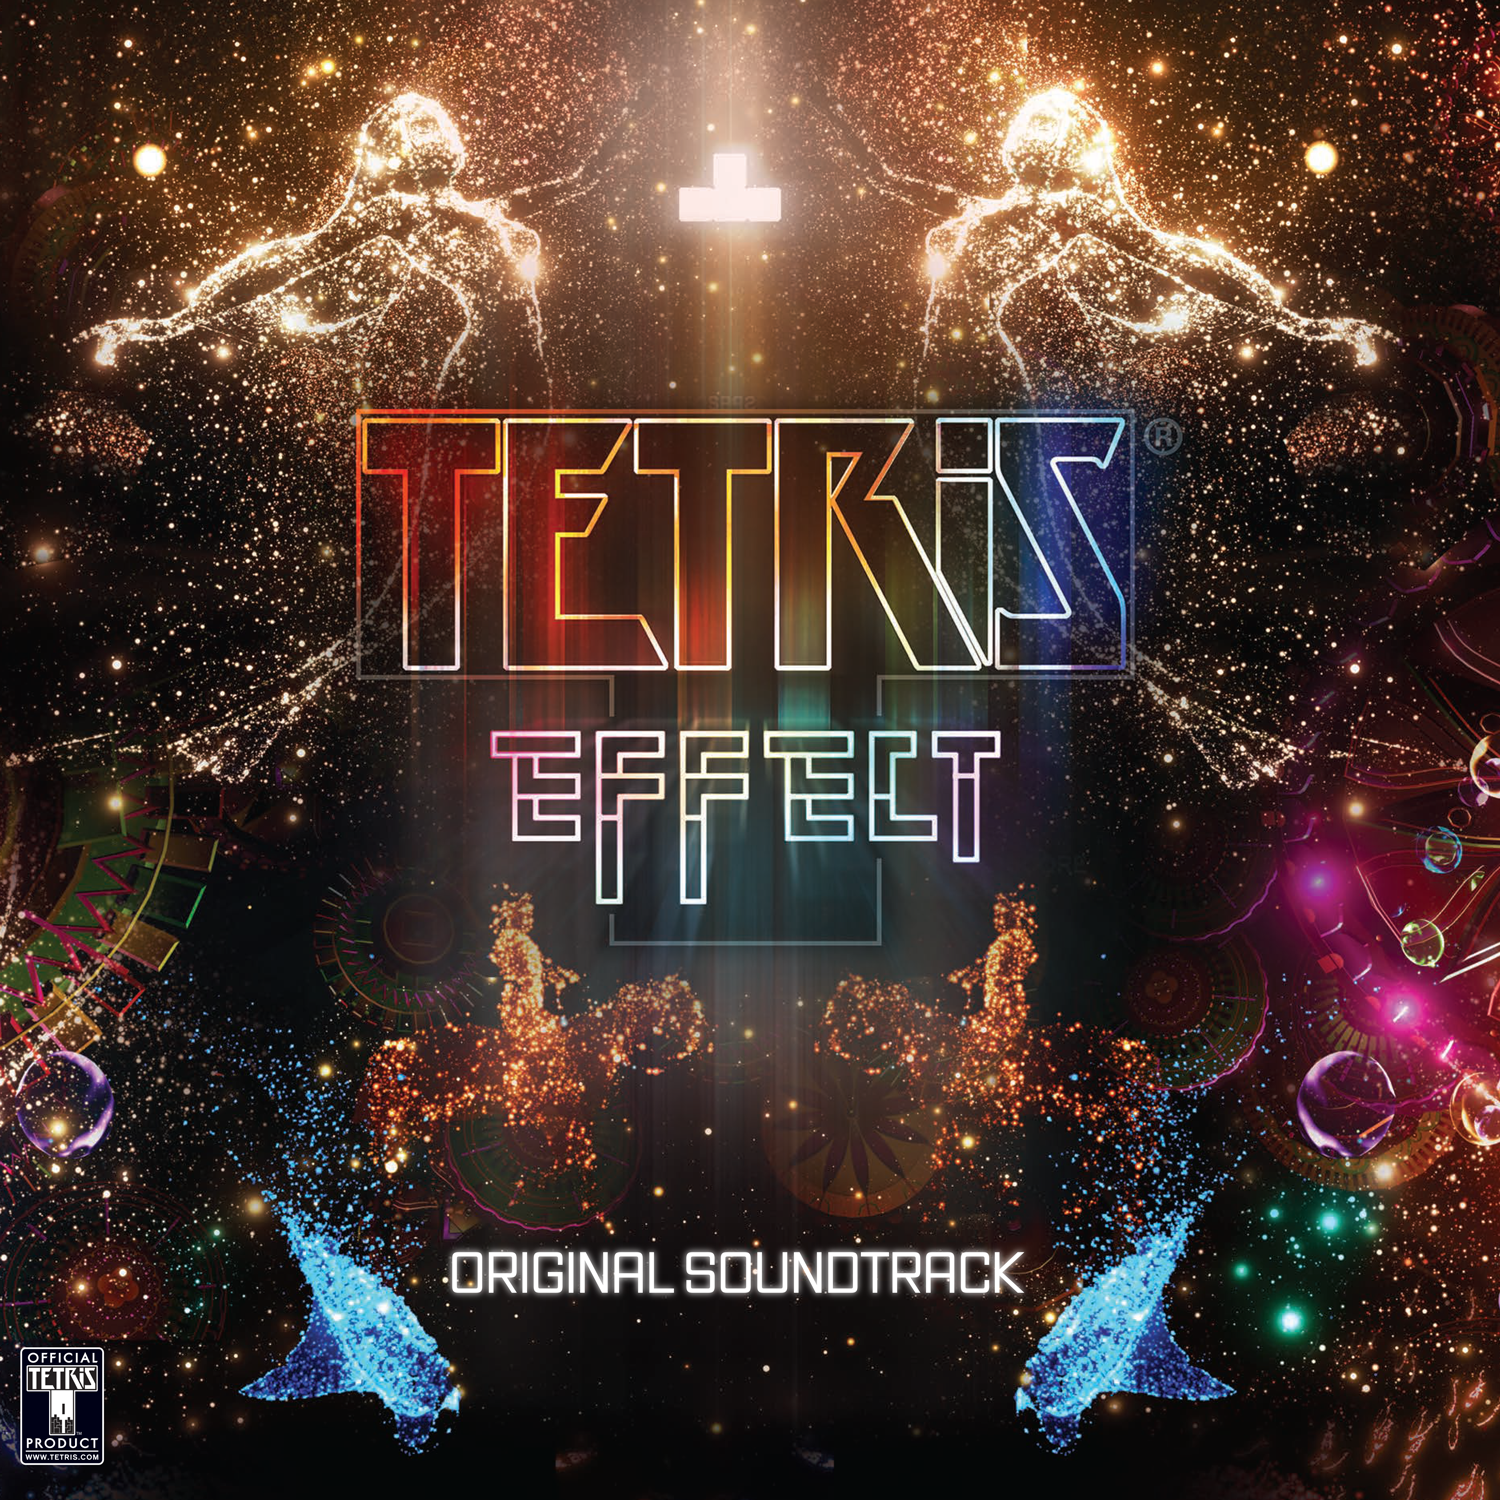 tetriseffect_official_album_artwork_1500x1500